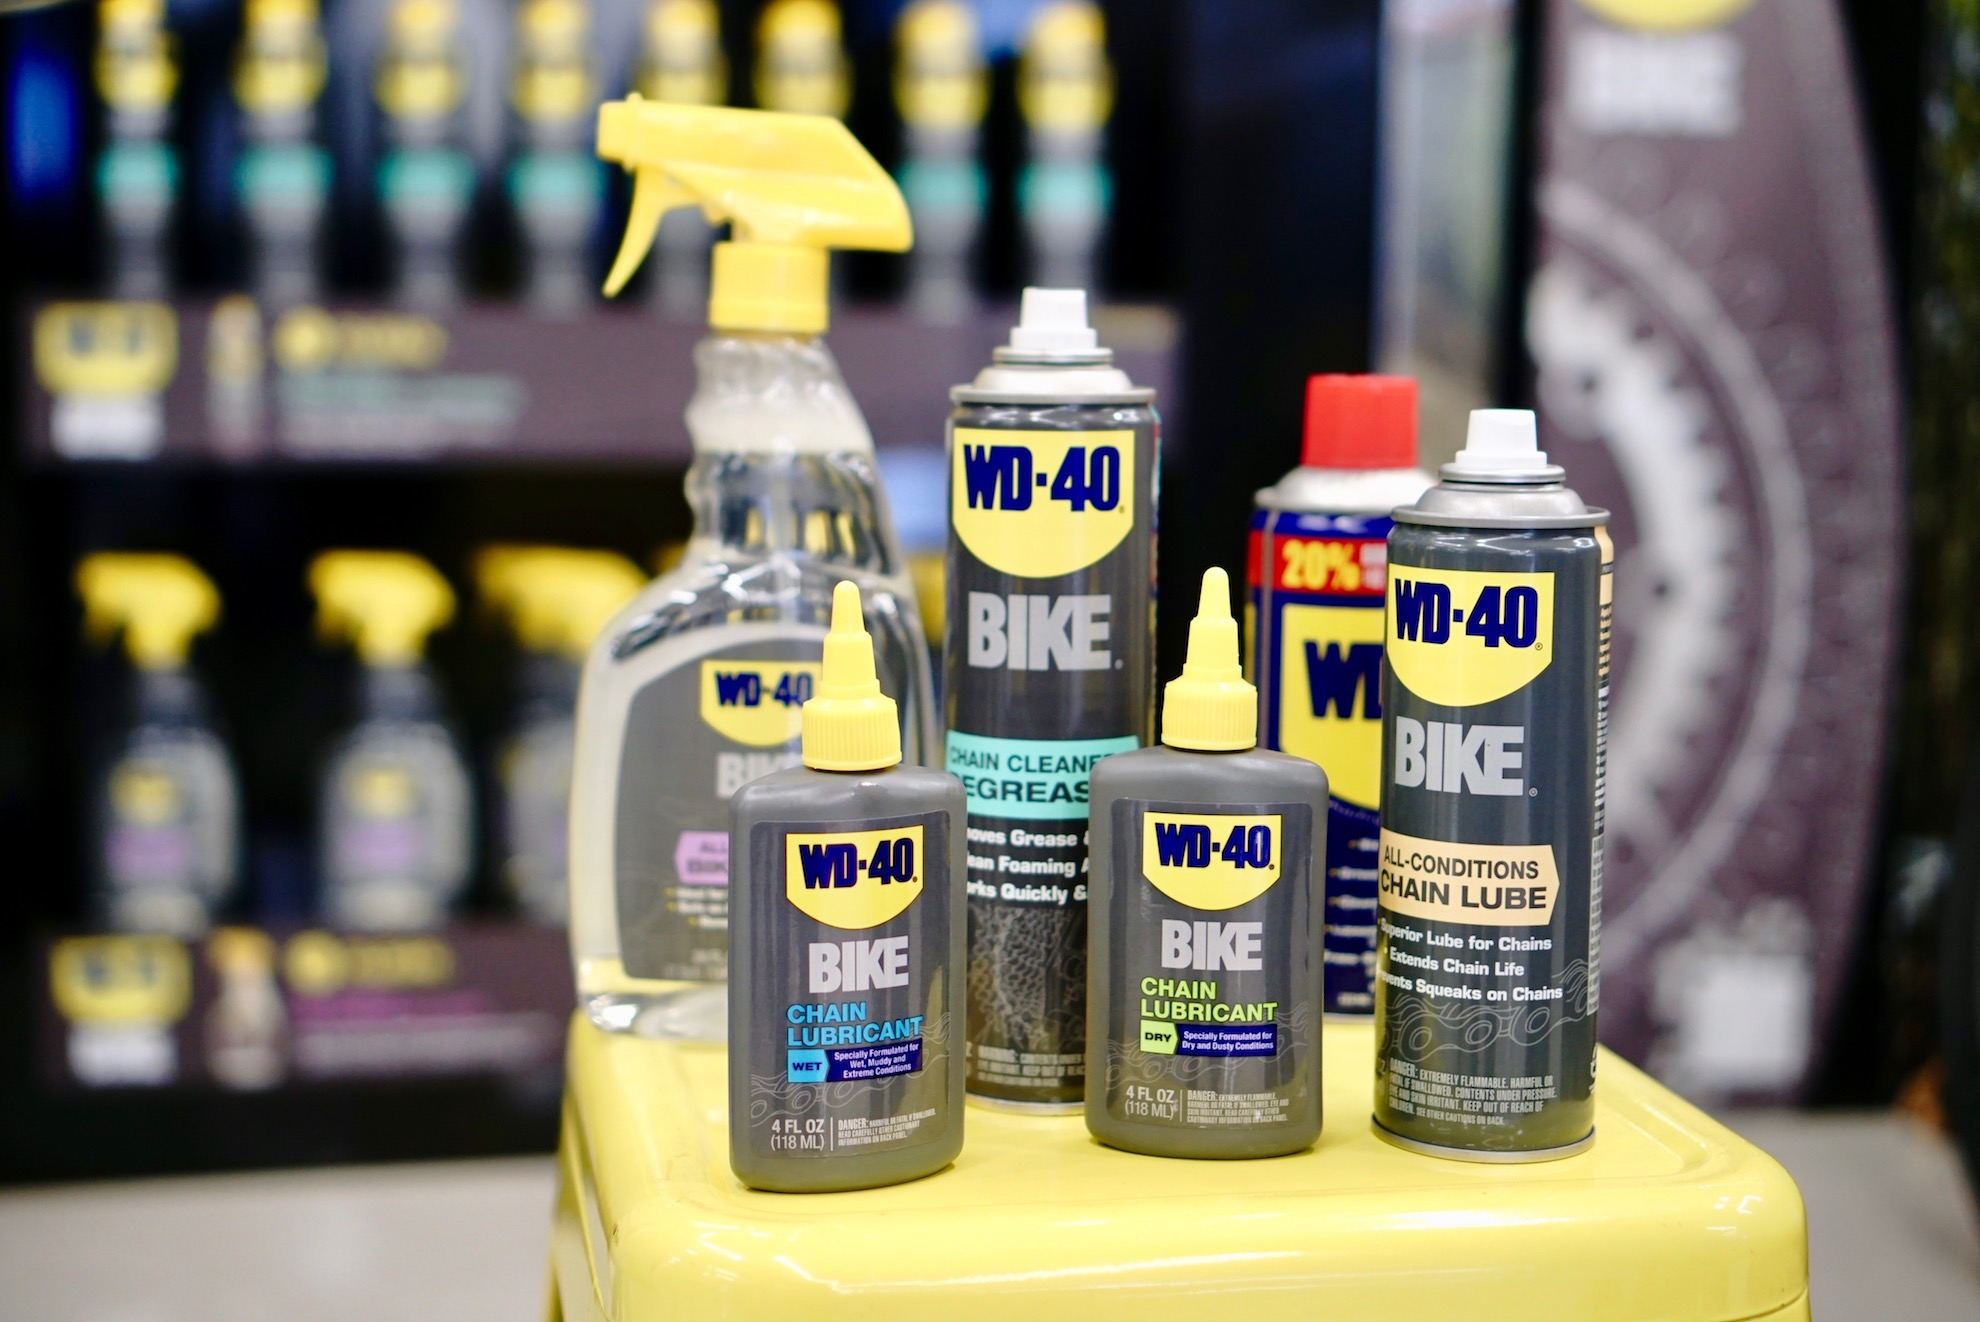 wd40 bike exists because we all want to cycle but not sweat on cleaning the bicycle